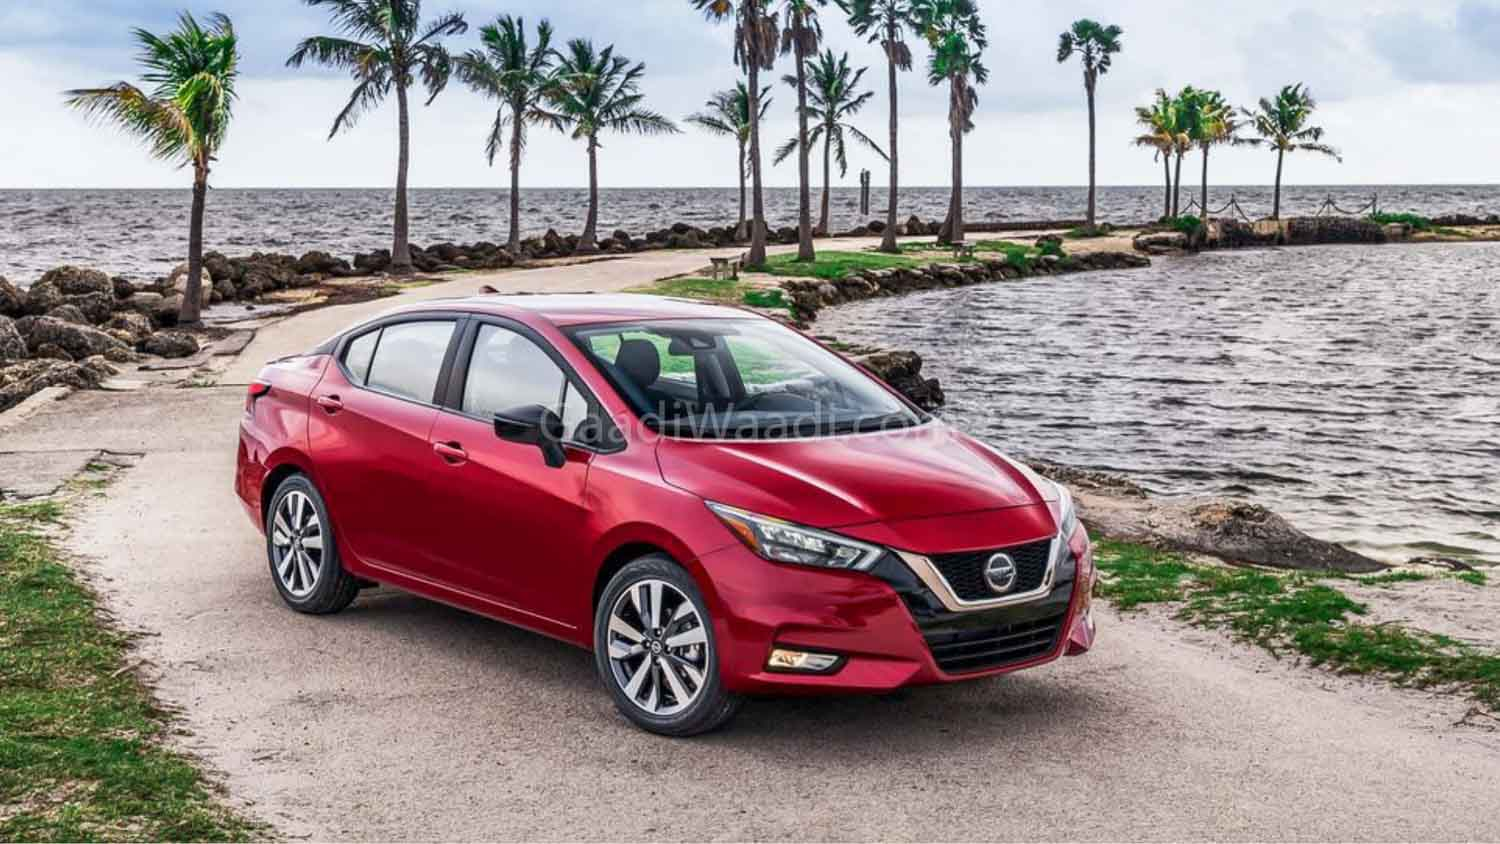 All-New 2020 Nissan Sunny (Versa) Unveiled, India Launch ...